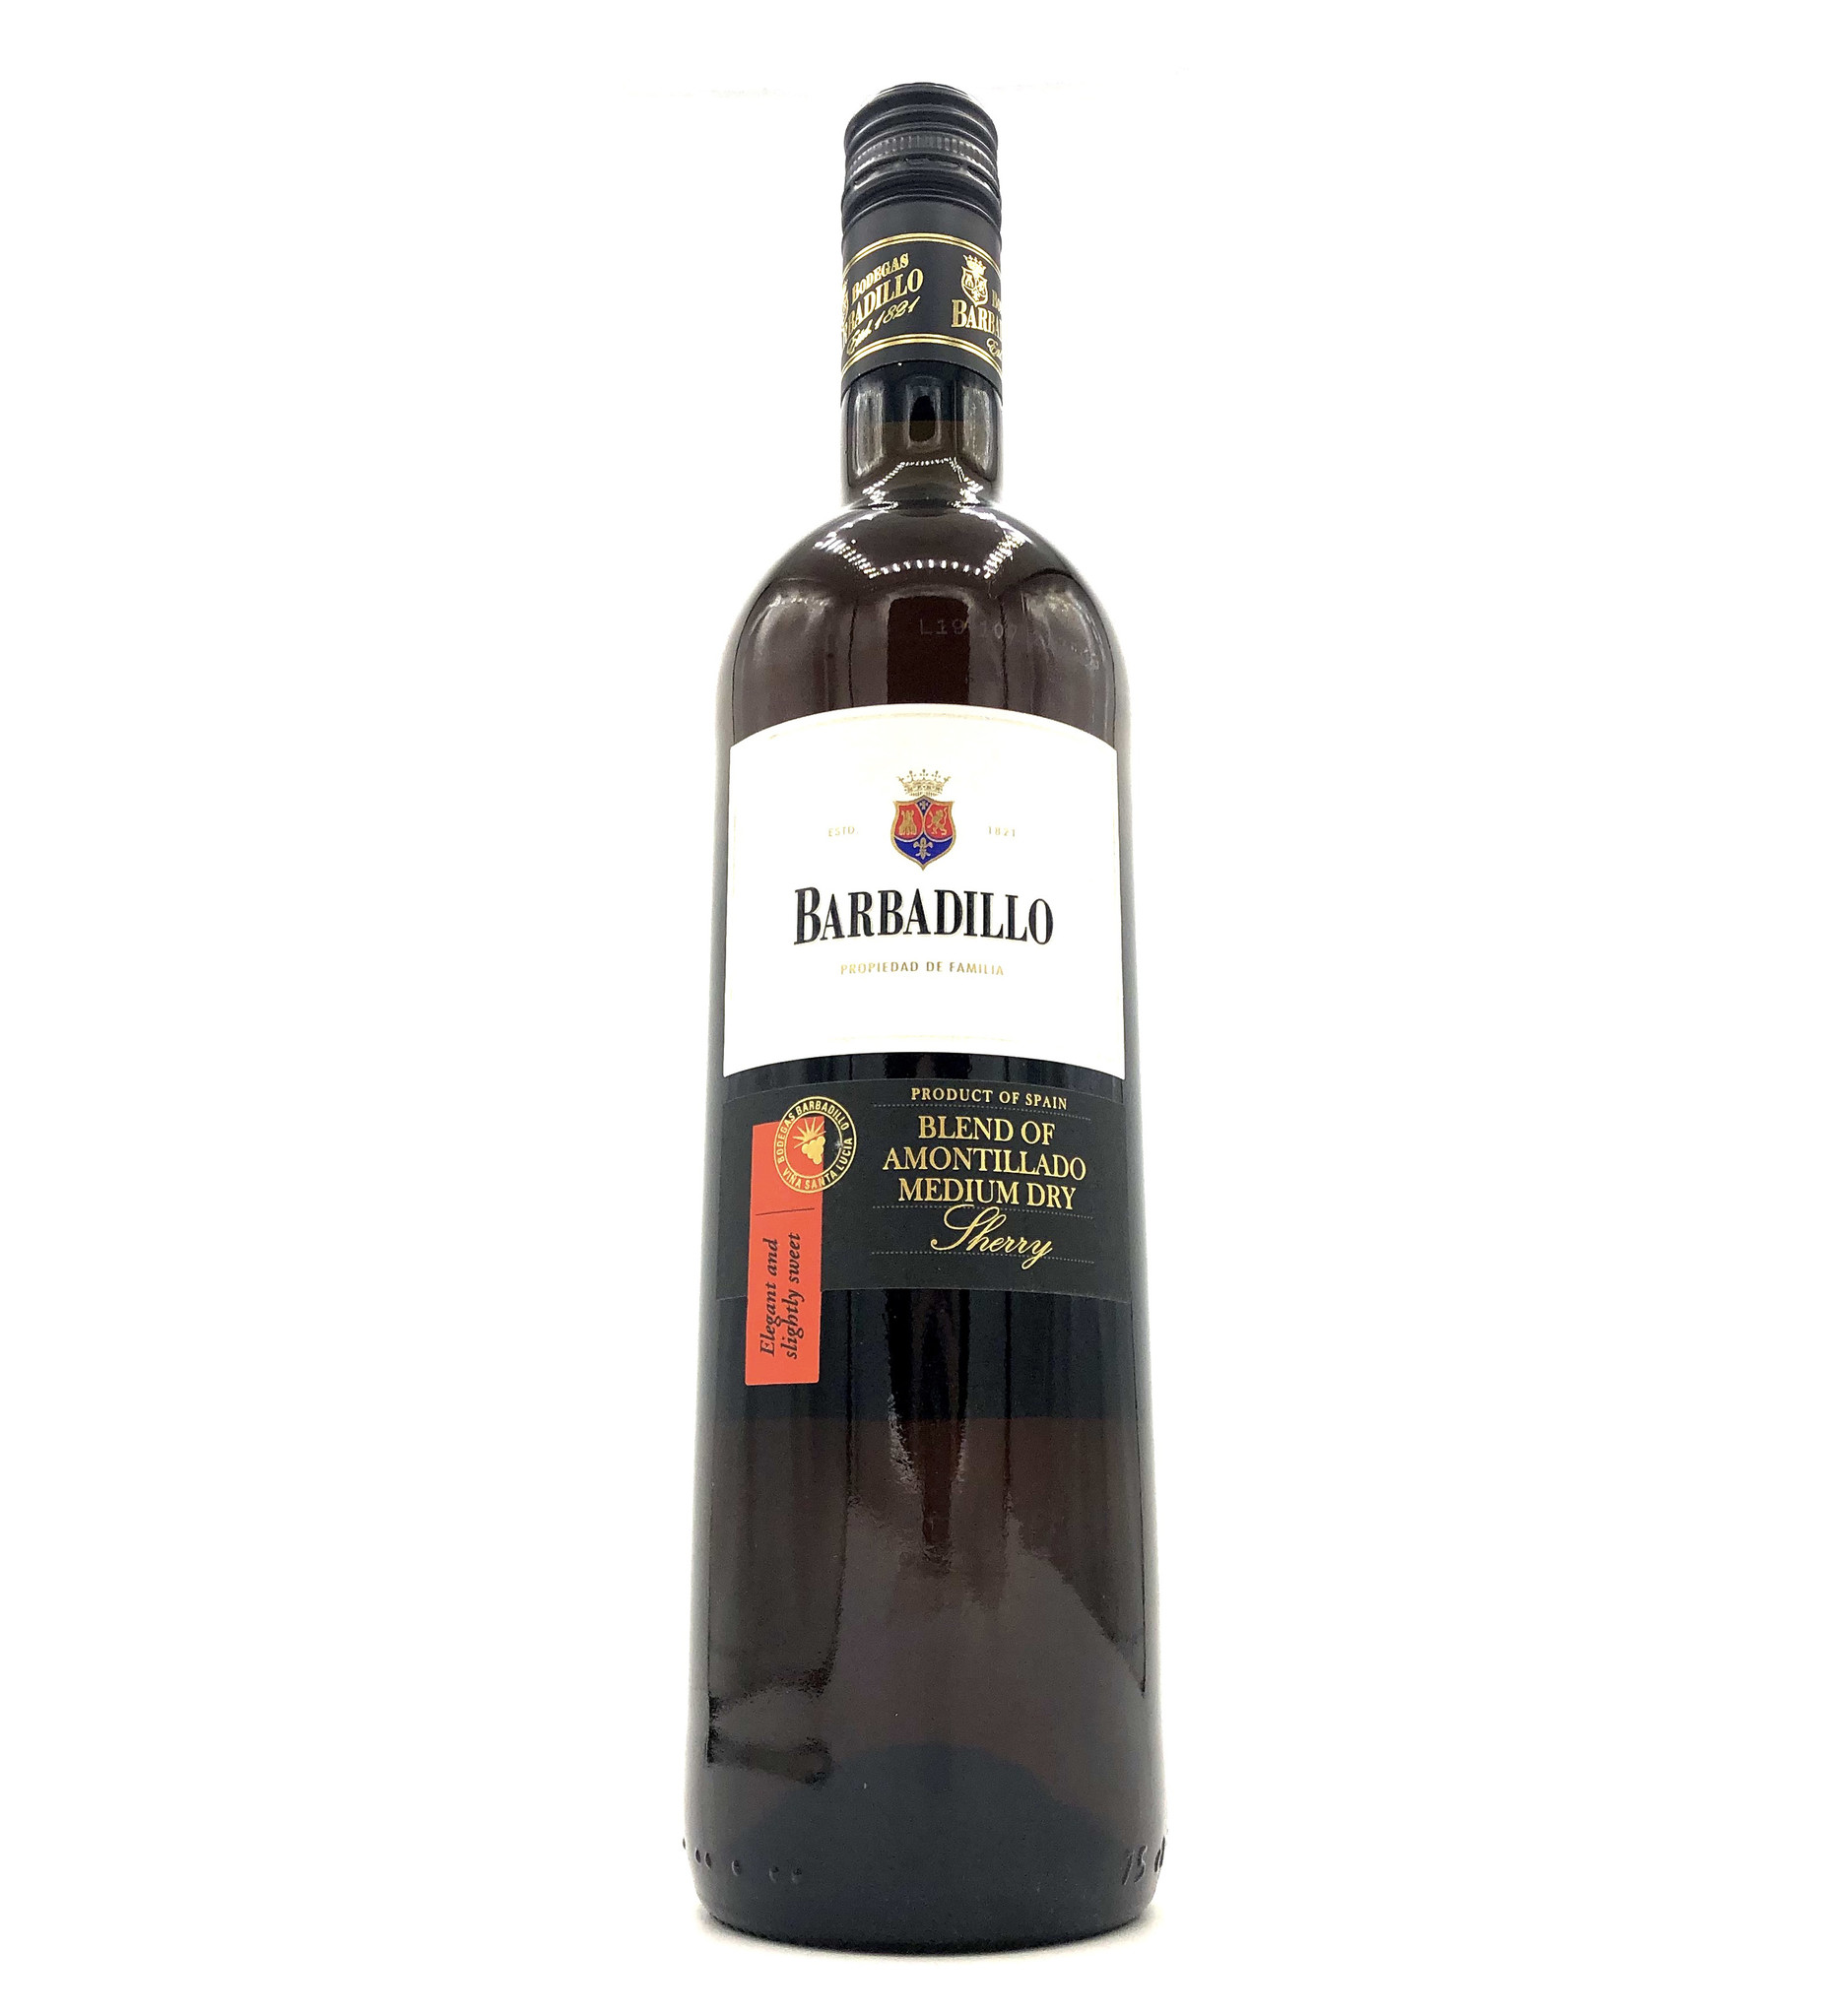 Amontillado Medium Dry NV 750ml Barbadillo